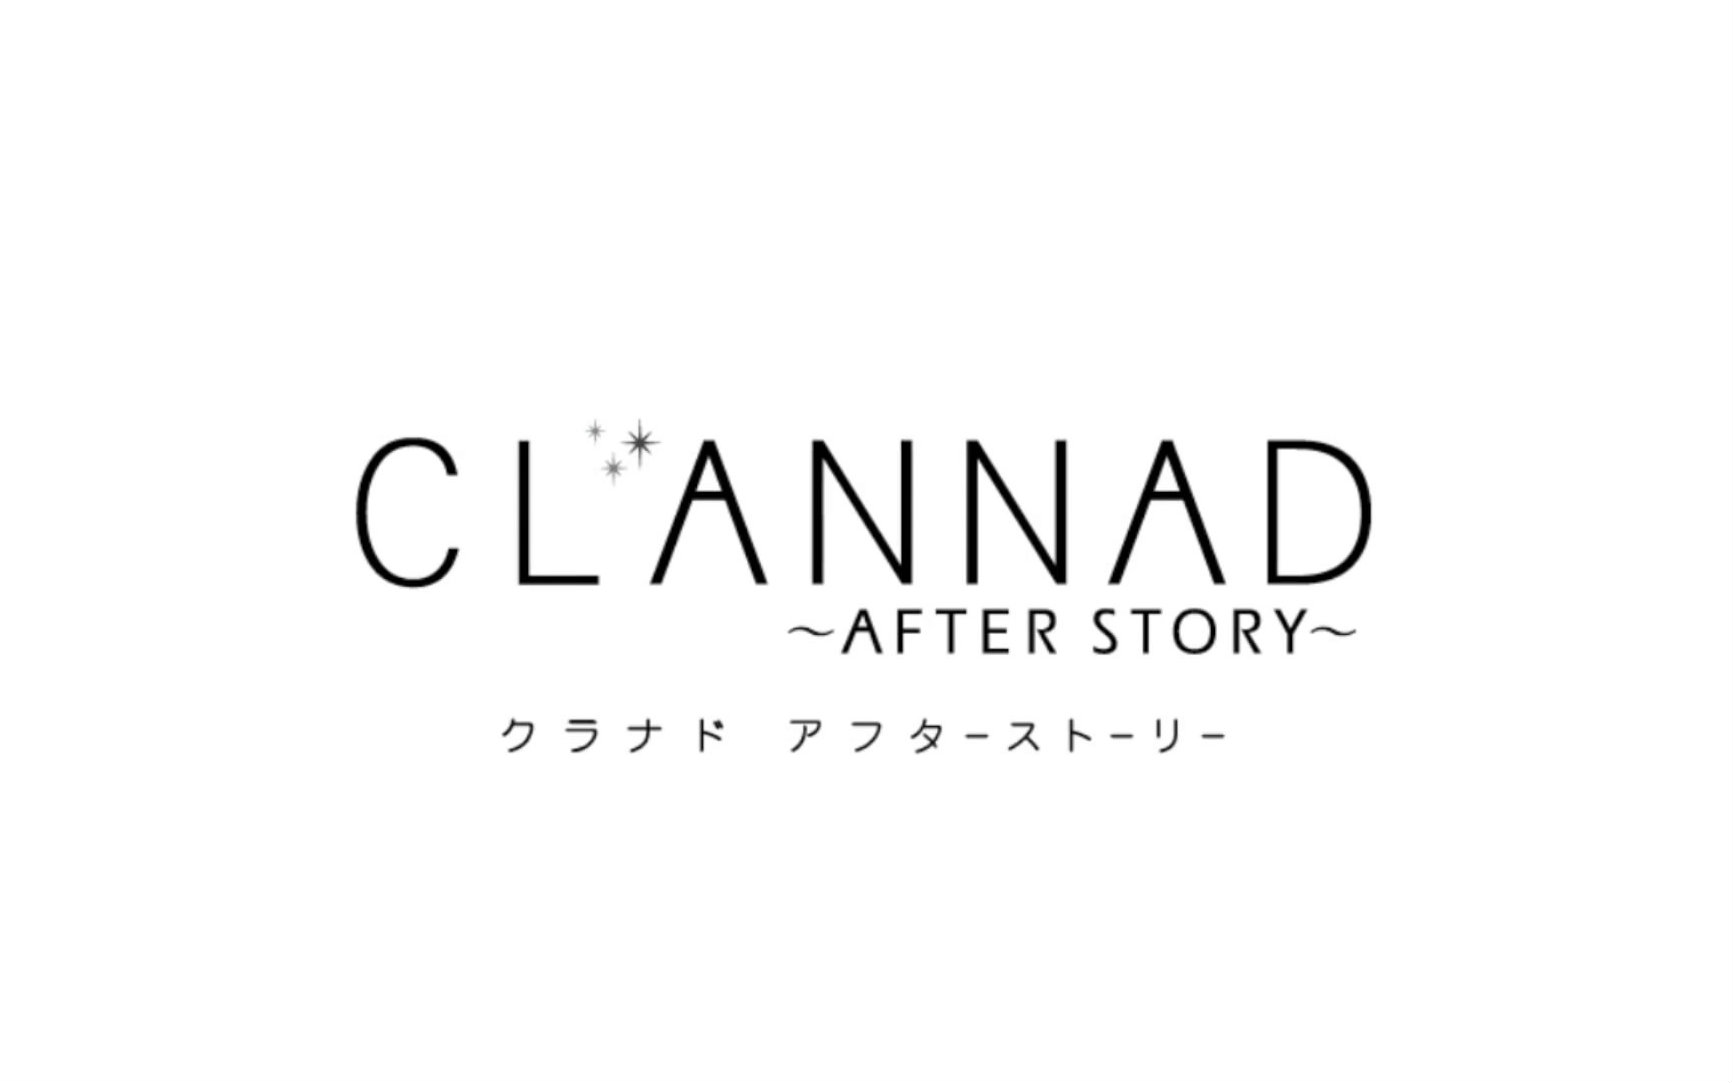 Key社催泪三部曲合集(Air+Clannad+AFTER STORY+Kanon)